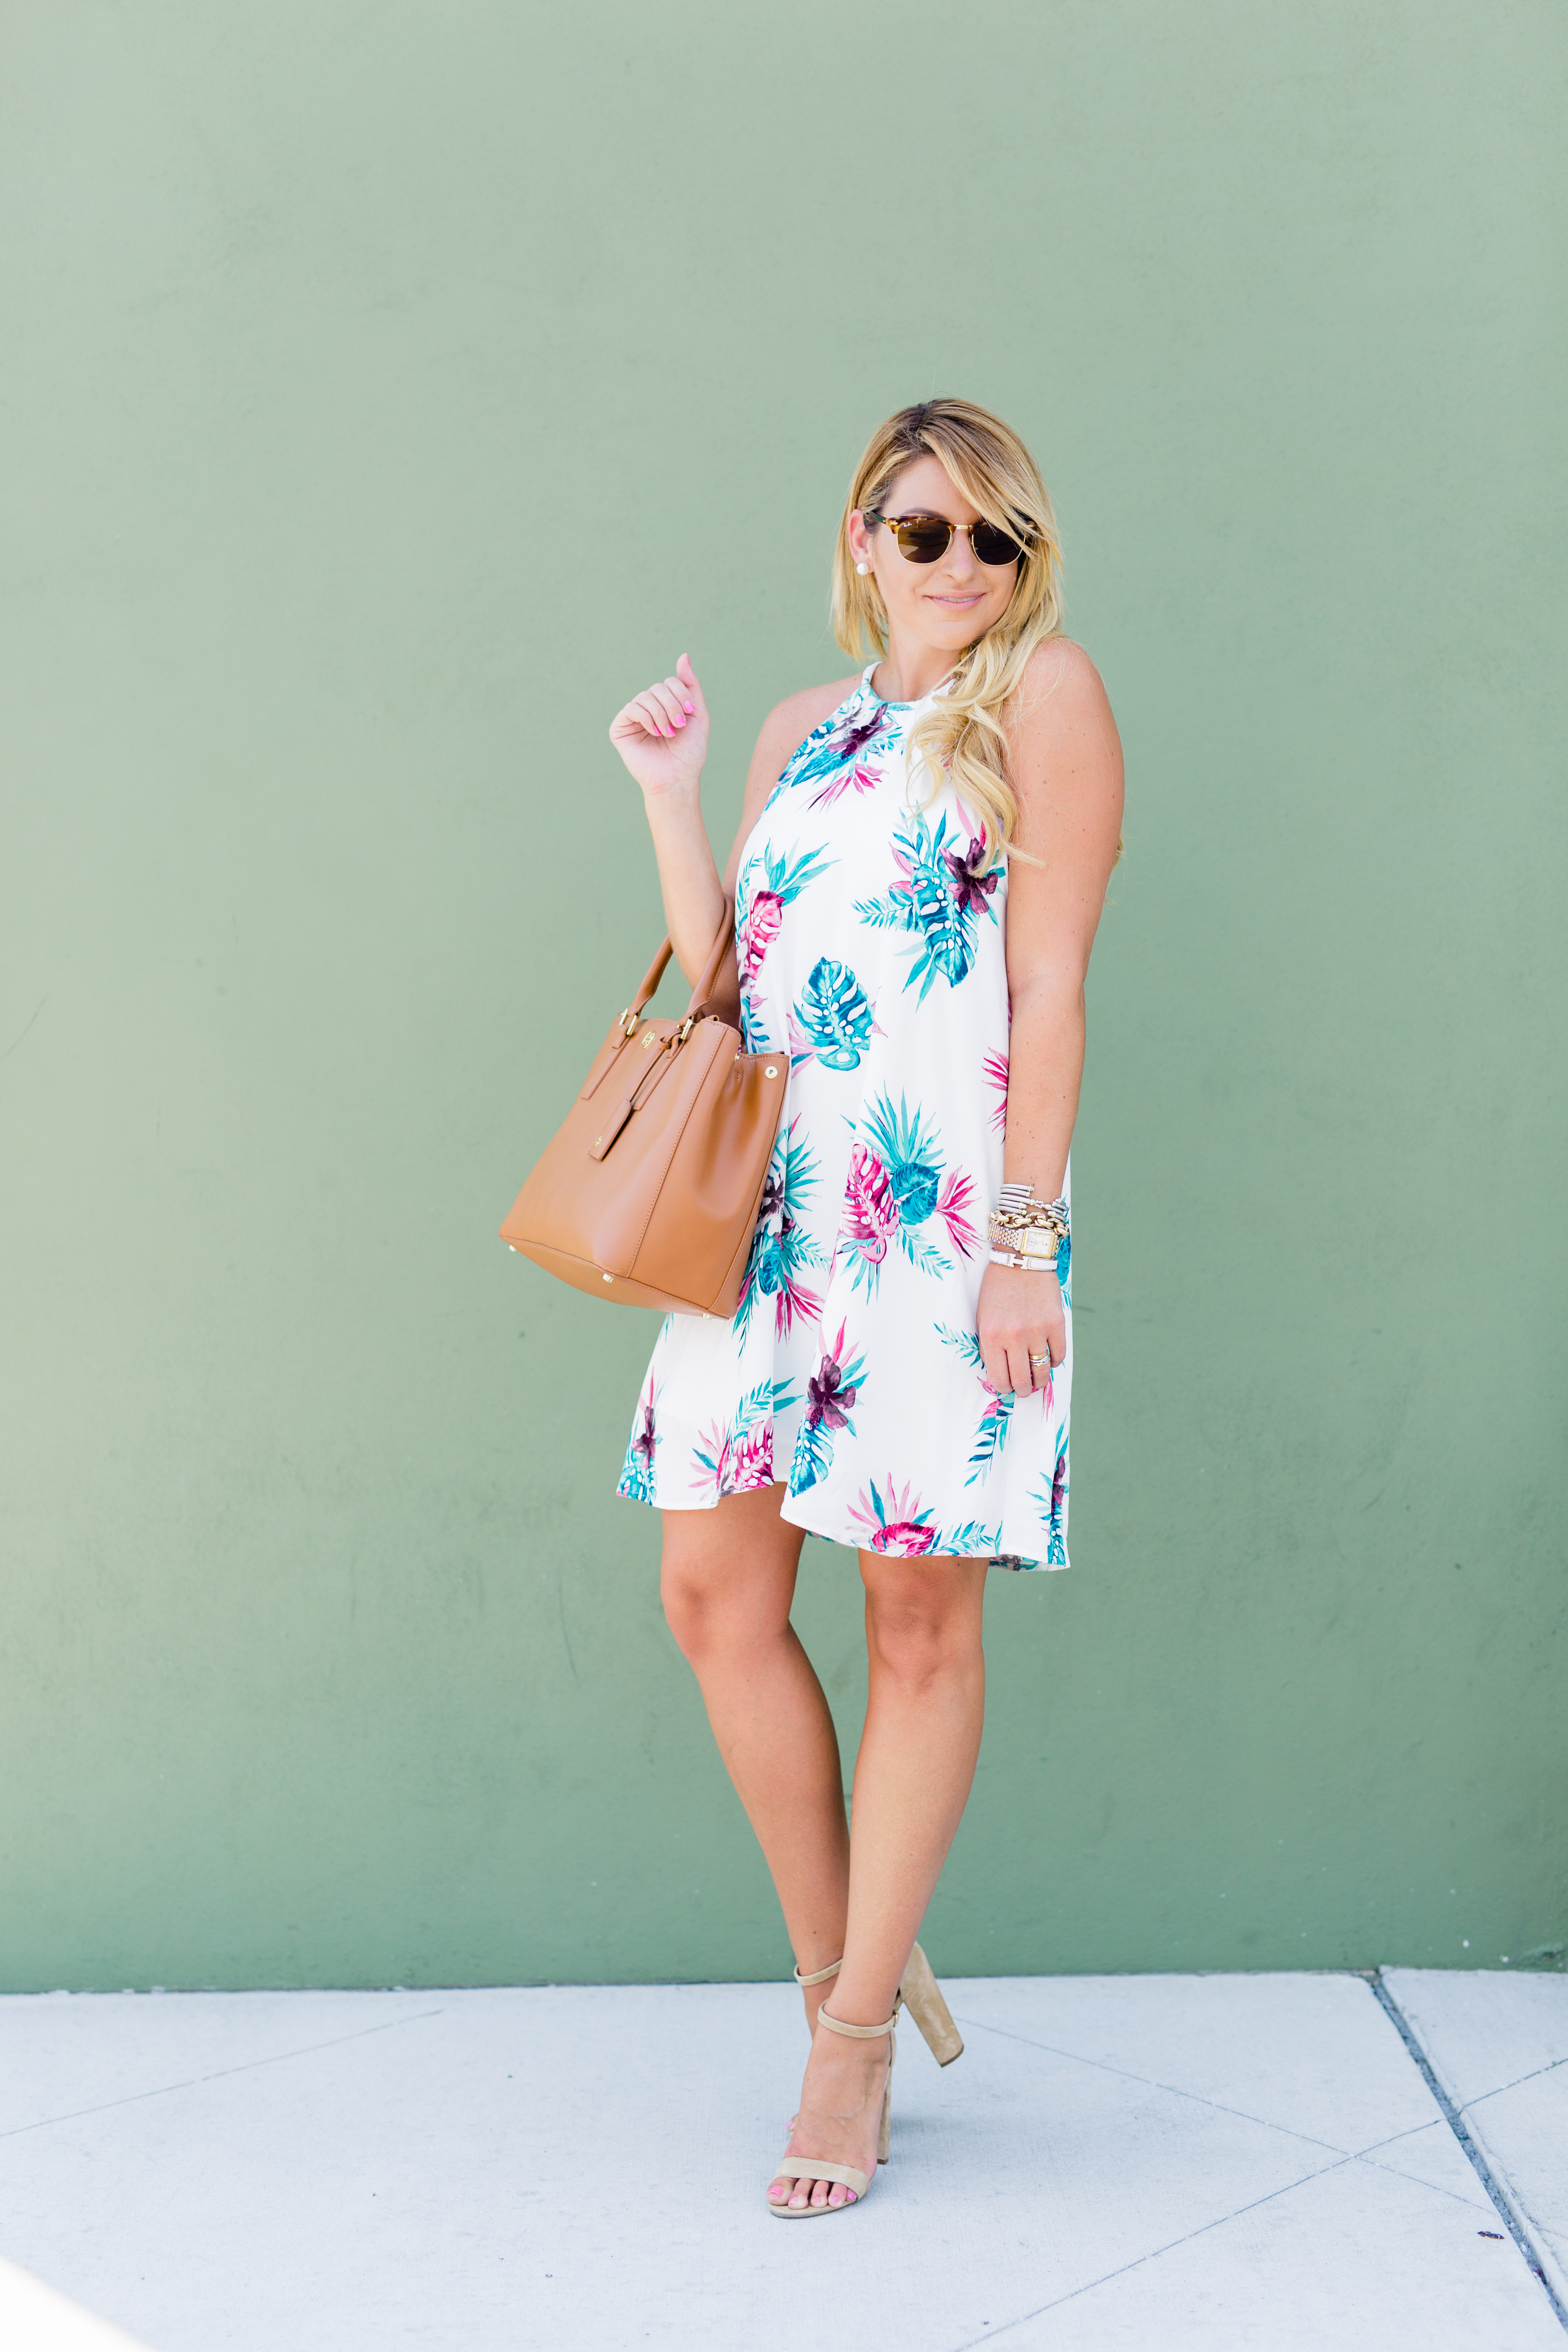 Outfit | Summer Dresses & Bags - SHOP DANDY | A florida